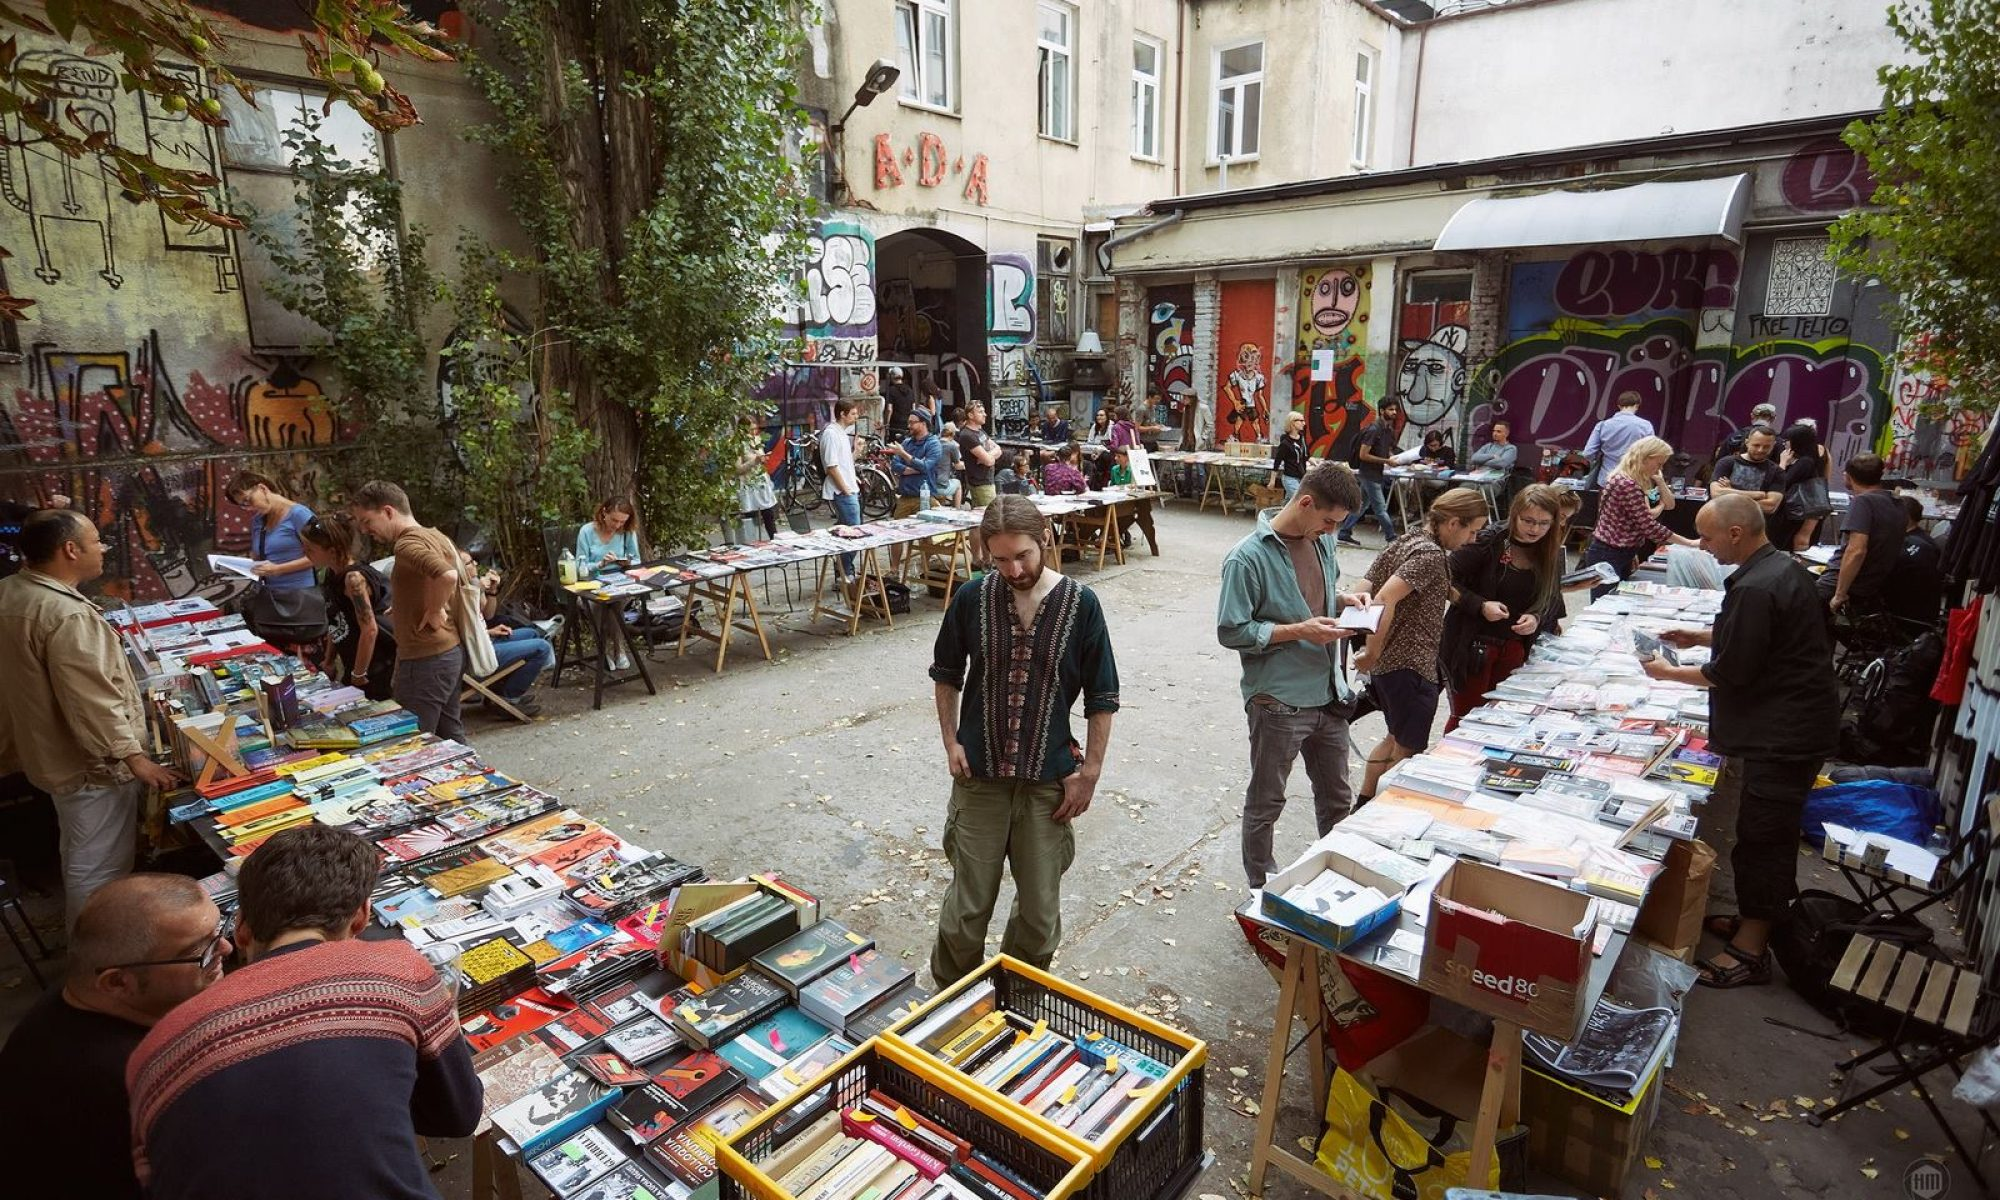 The 5th Annual Warsaw Independent Bookfair /// 5-6.09.2020, Warsaw, Poland